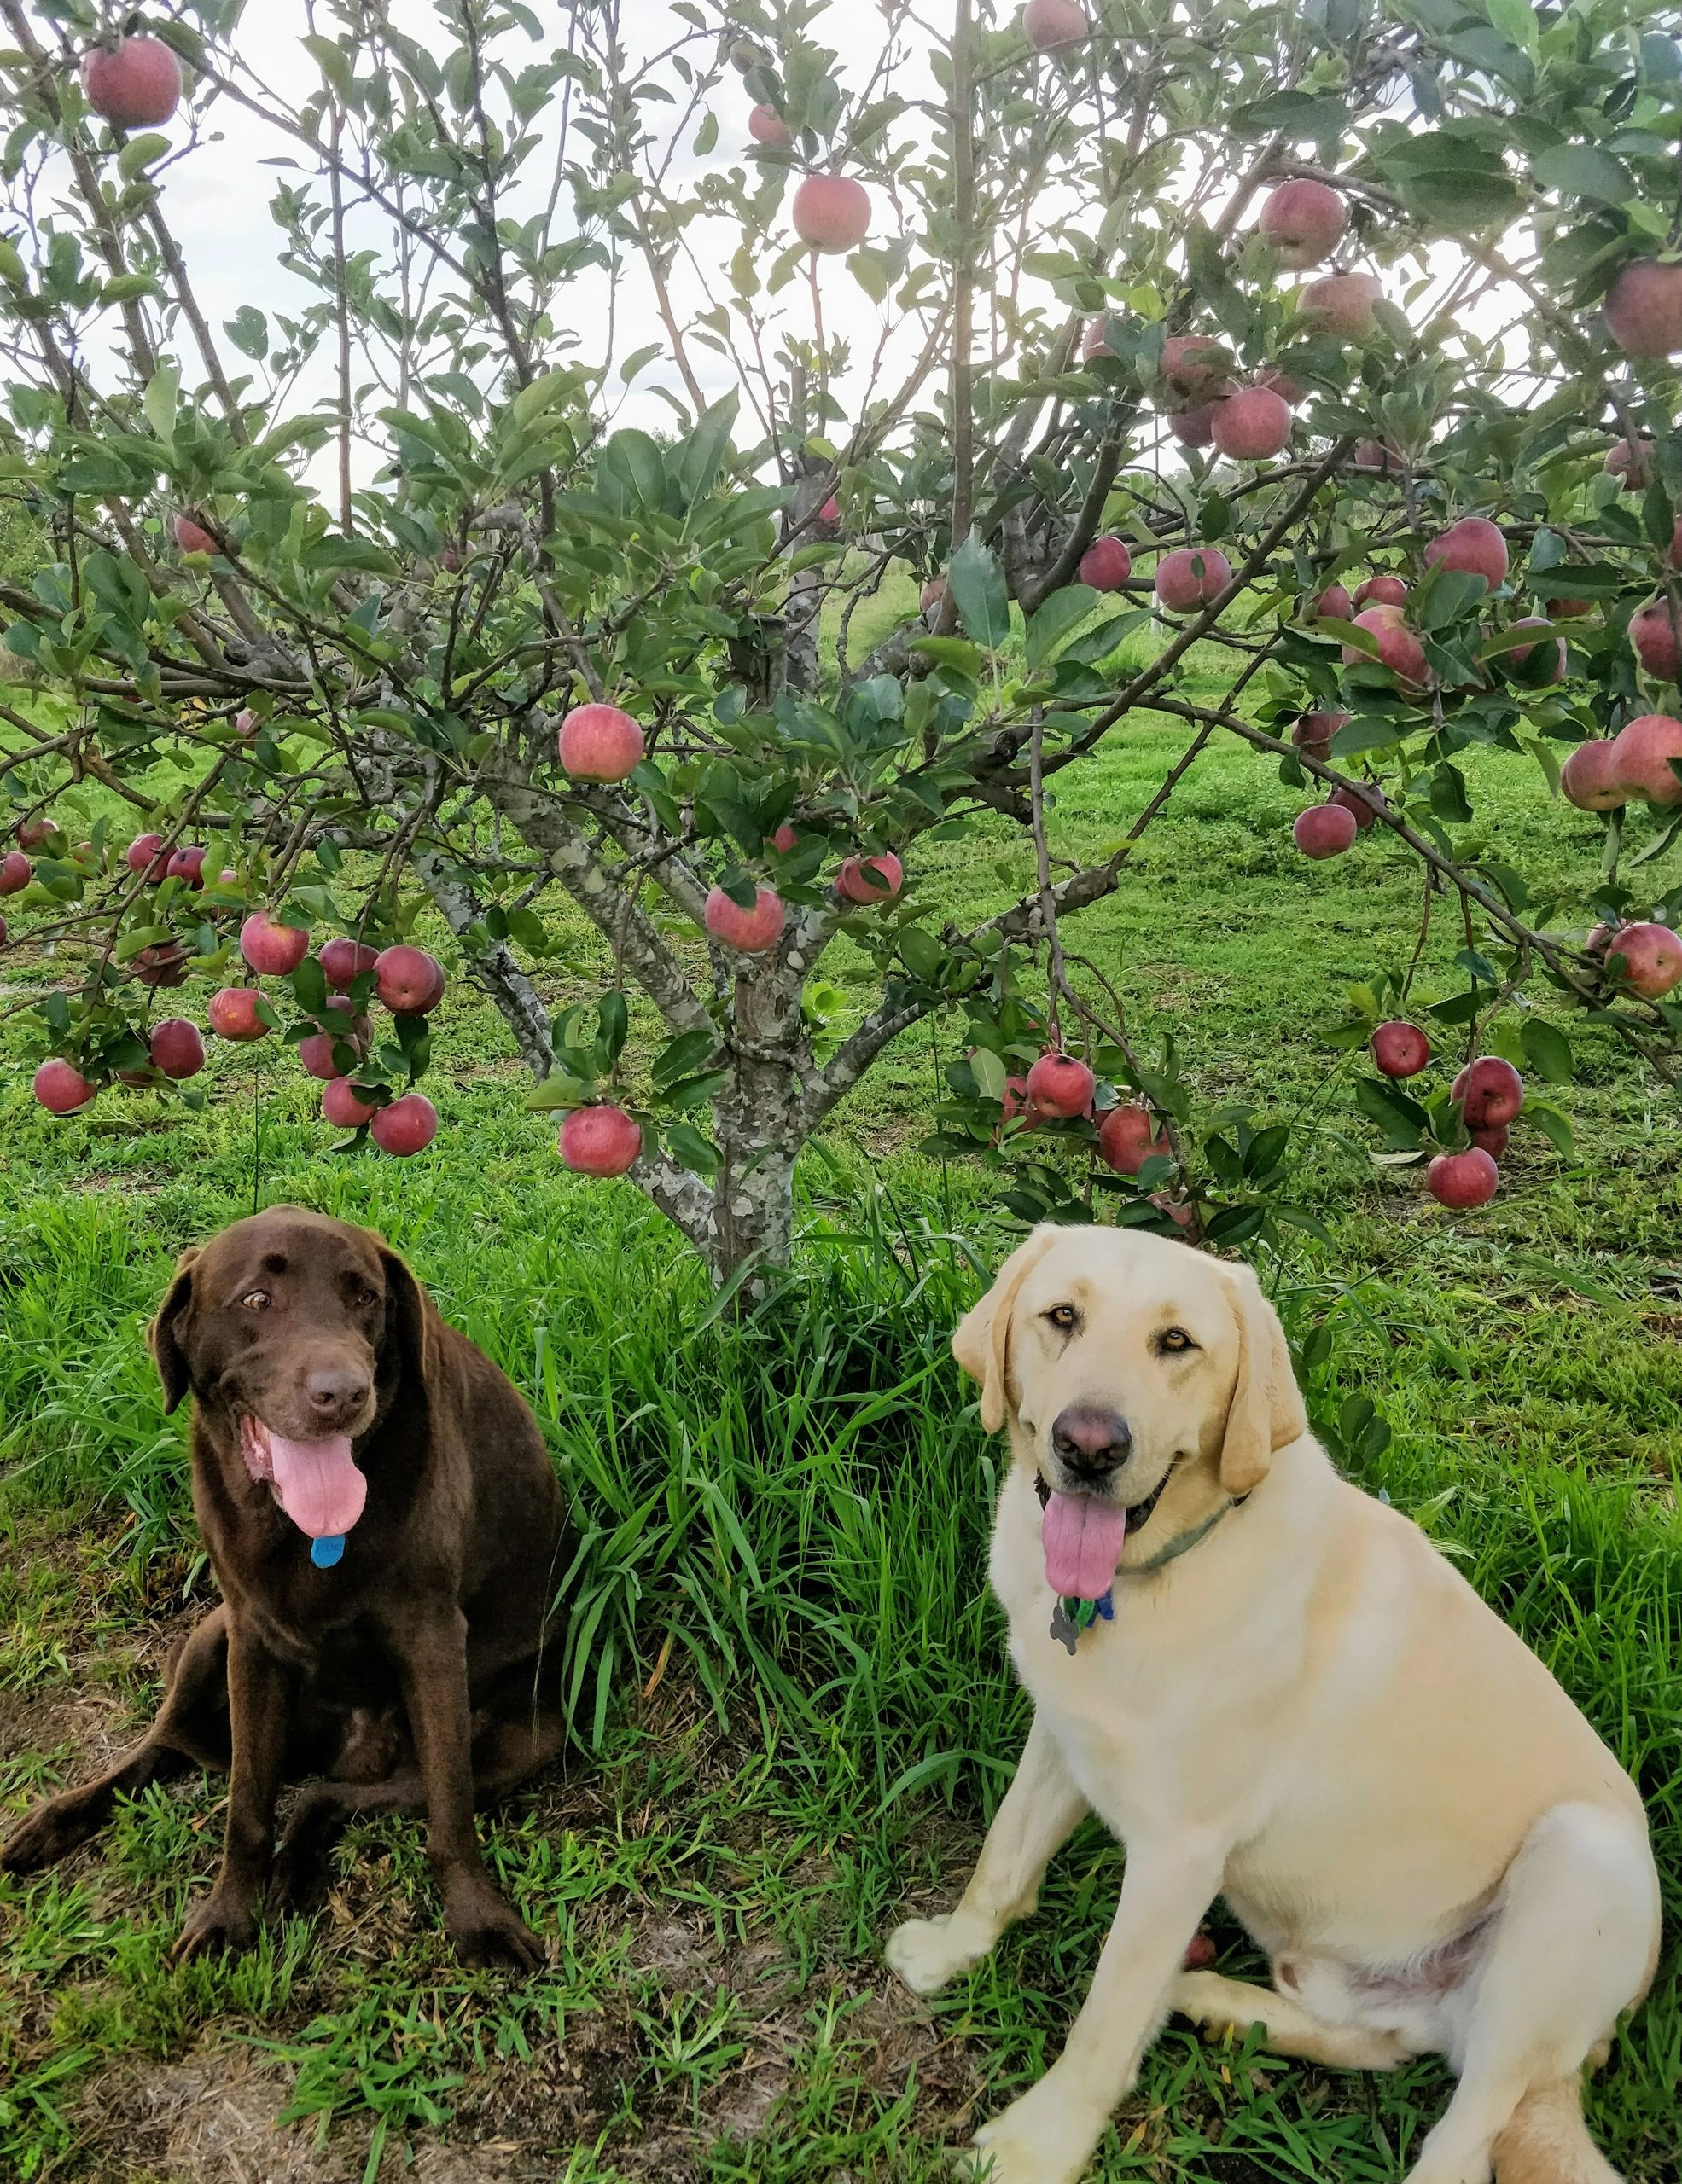 Meet Stanley and Hugo. Our resident labradors who will greet you when you arrive.